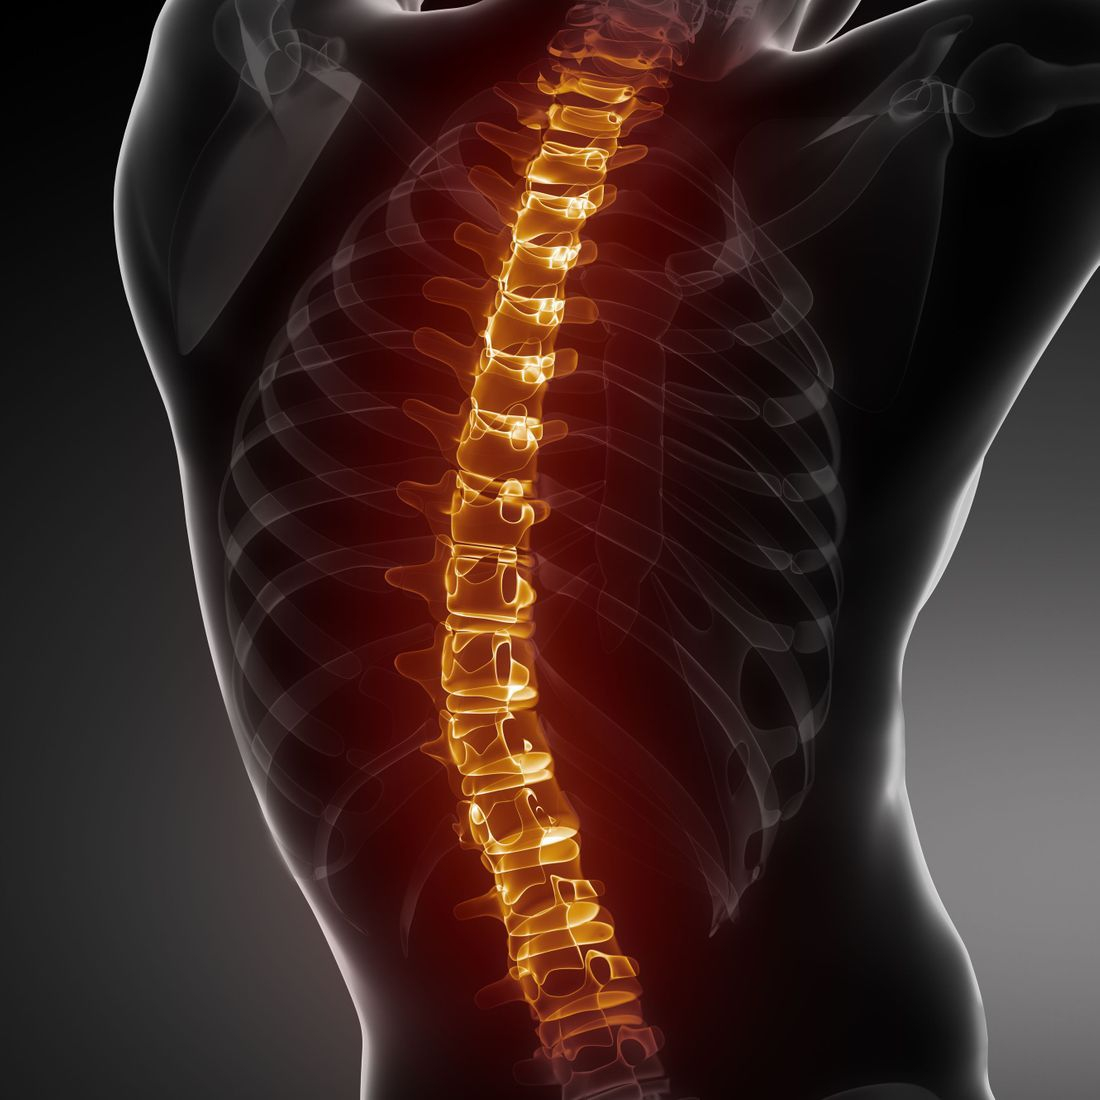 Spinal acupuncture care, back pain, degenerative disc disease